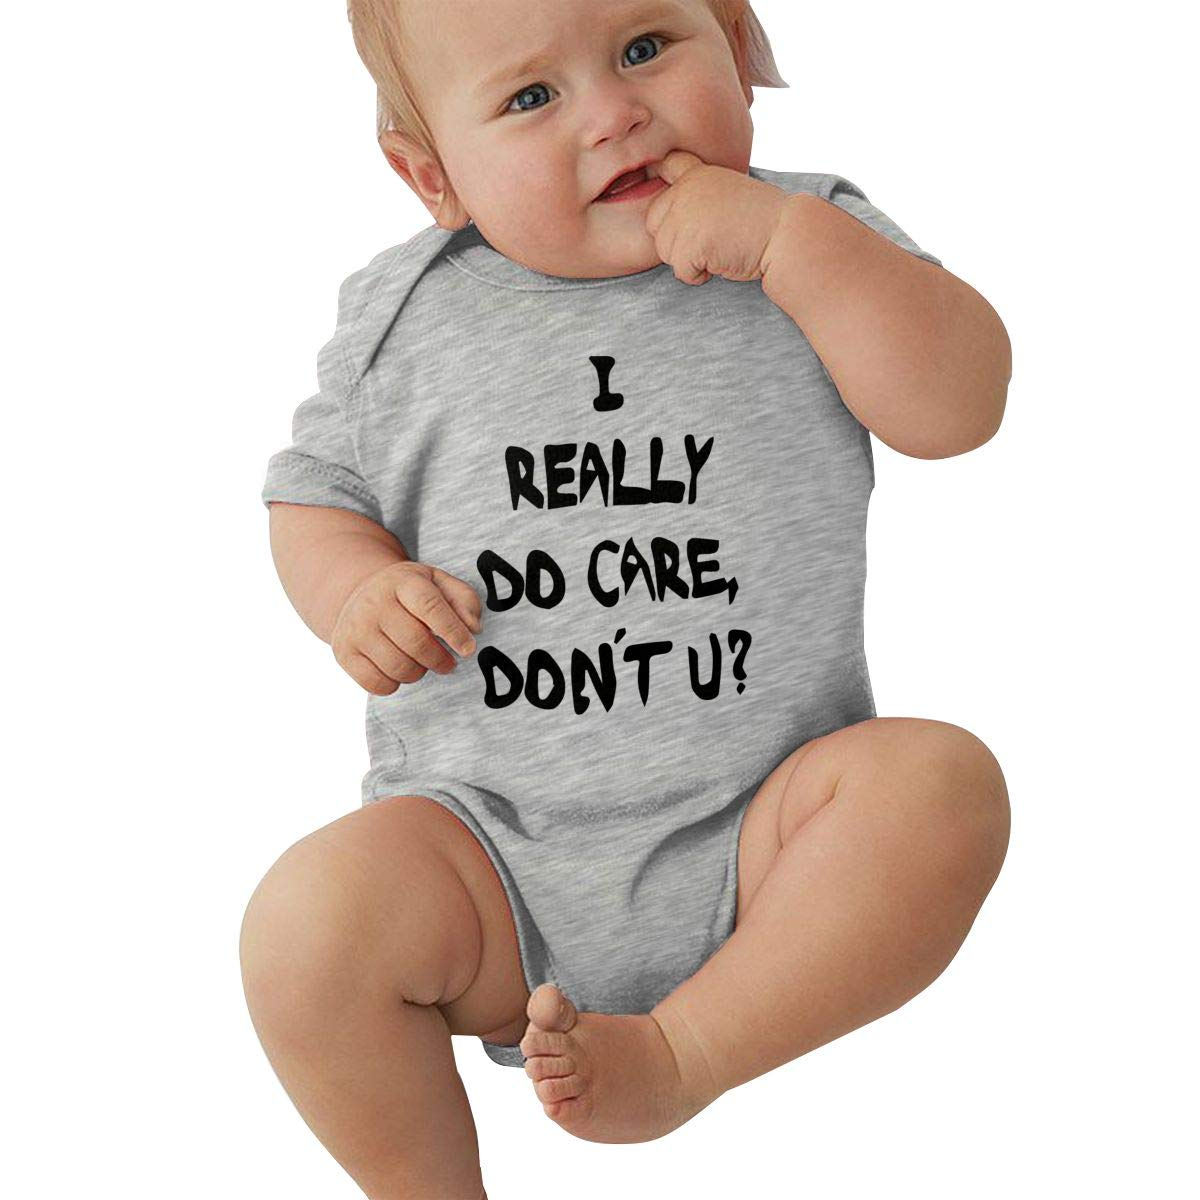 Dont You Newborn Baby Girl Boy Bodysuit Jumpsuit Short Sleeve Bodysuit Tops Clothes I Really Do Care